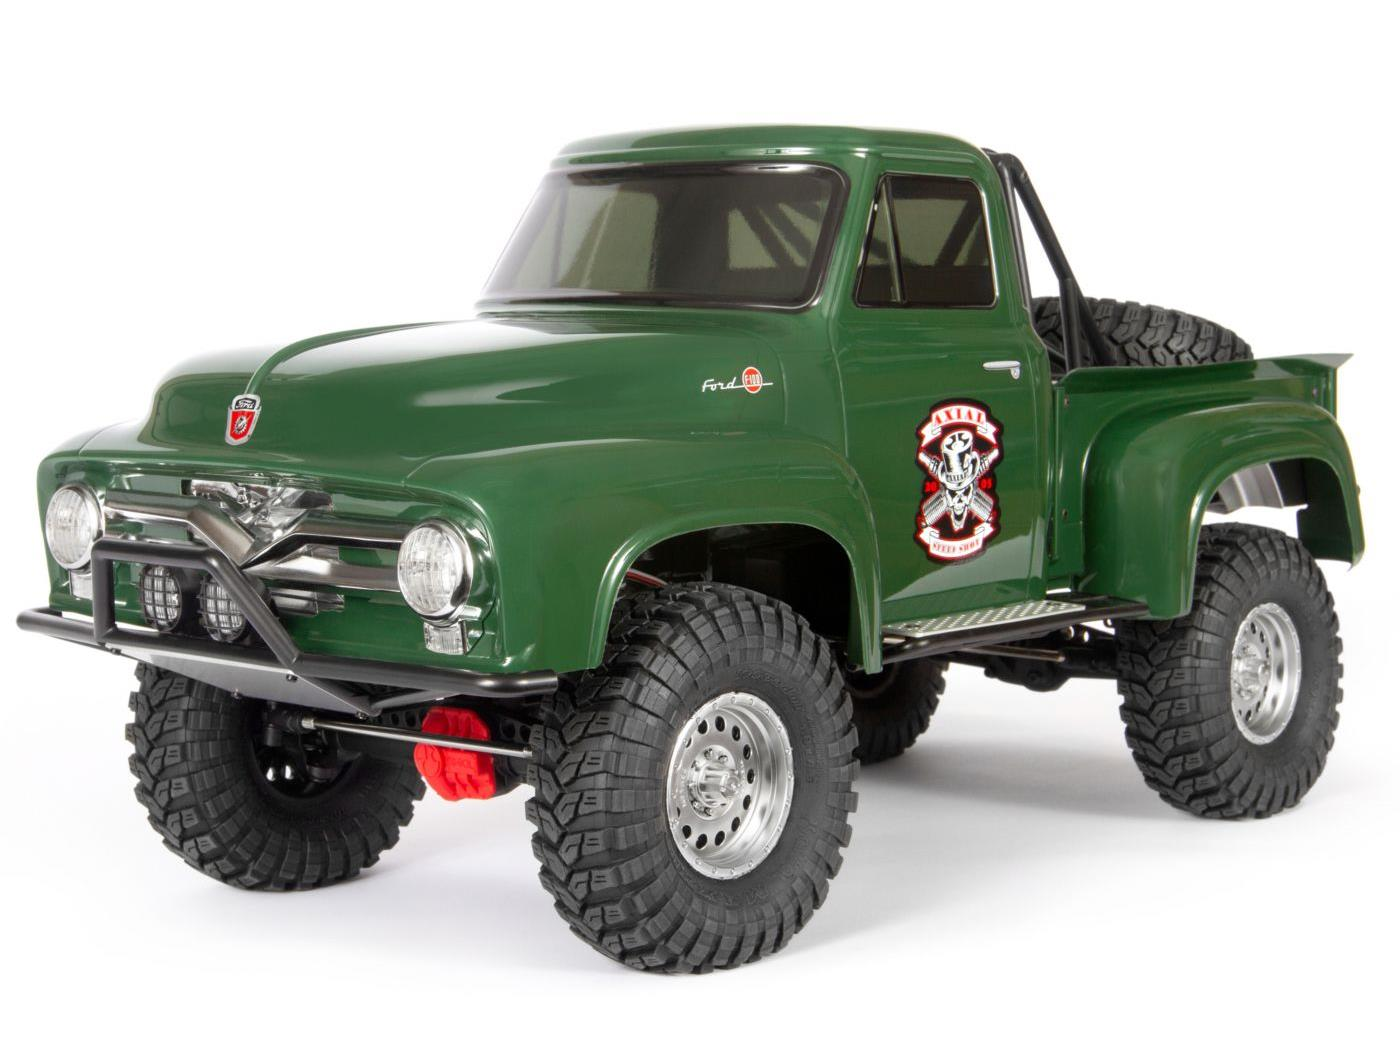 Axial SCX10 II 1955 Ford F-100 4WD RTR - Green